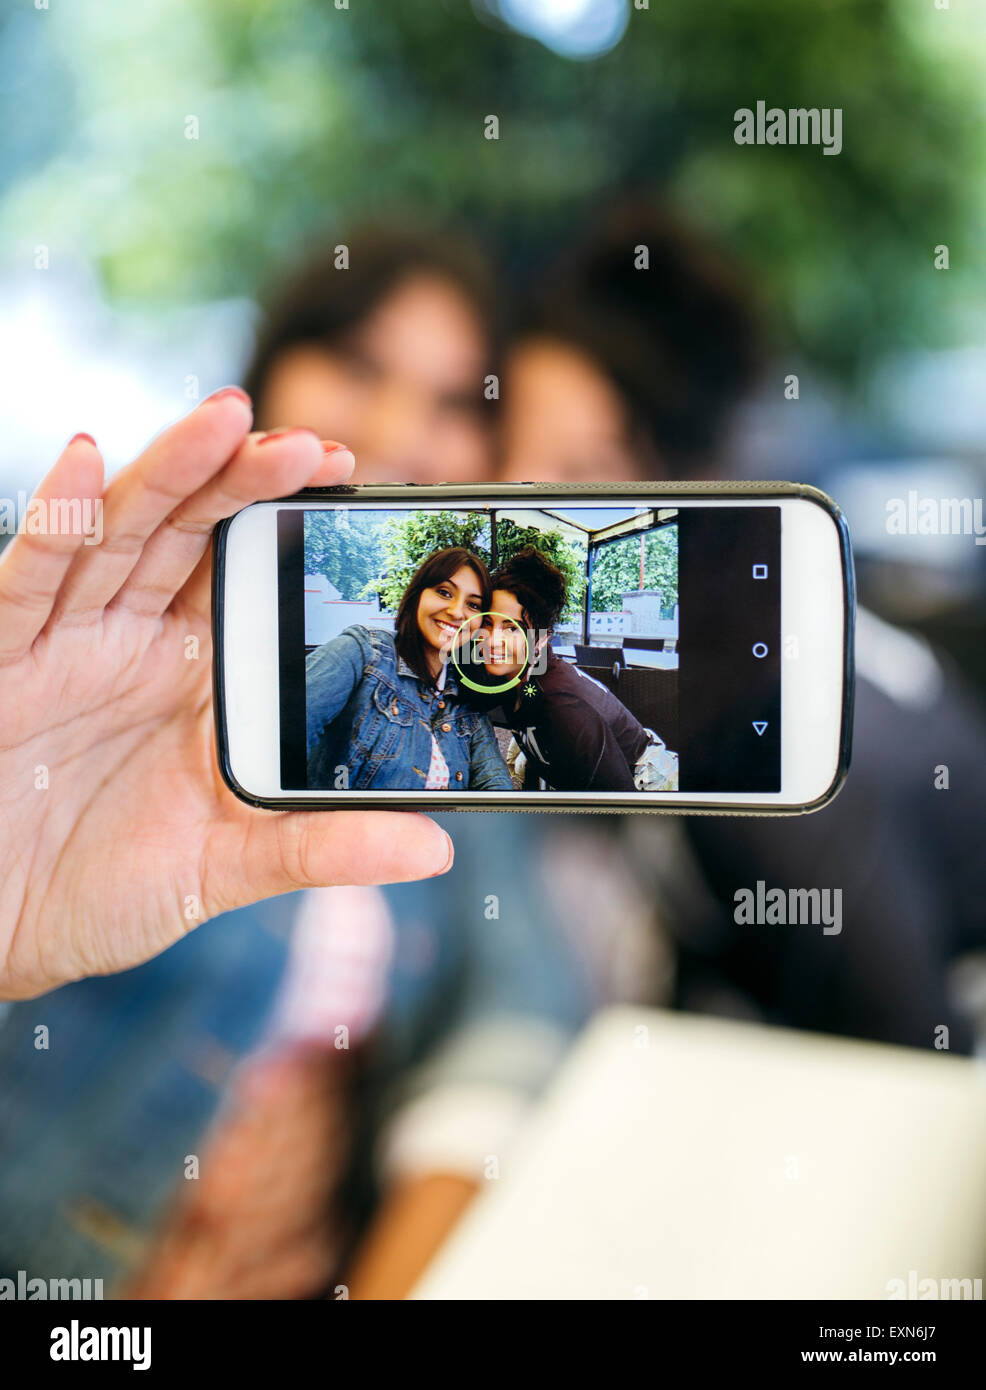 Display of smartphone with photography of two women taking a selfie - Stock Image